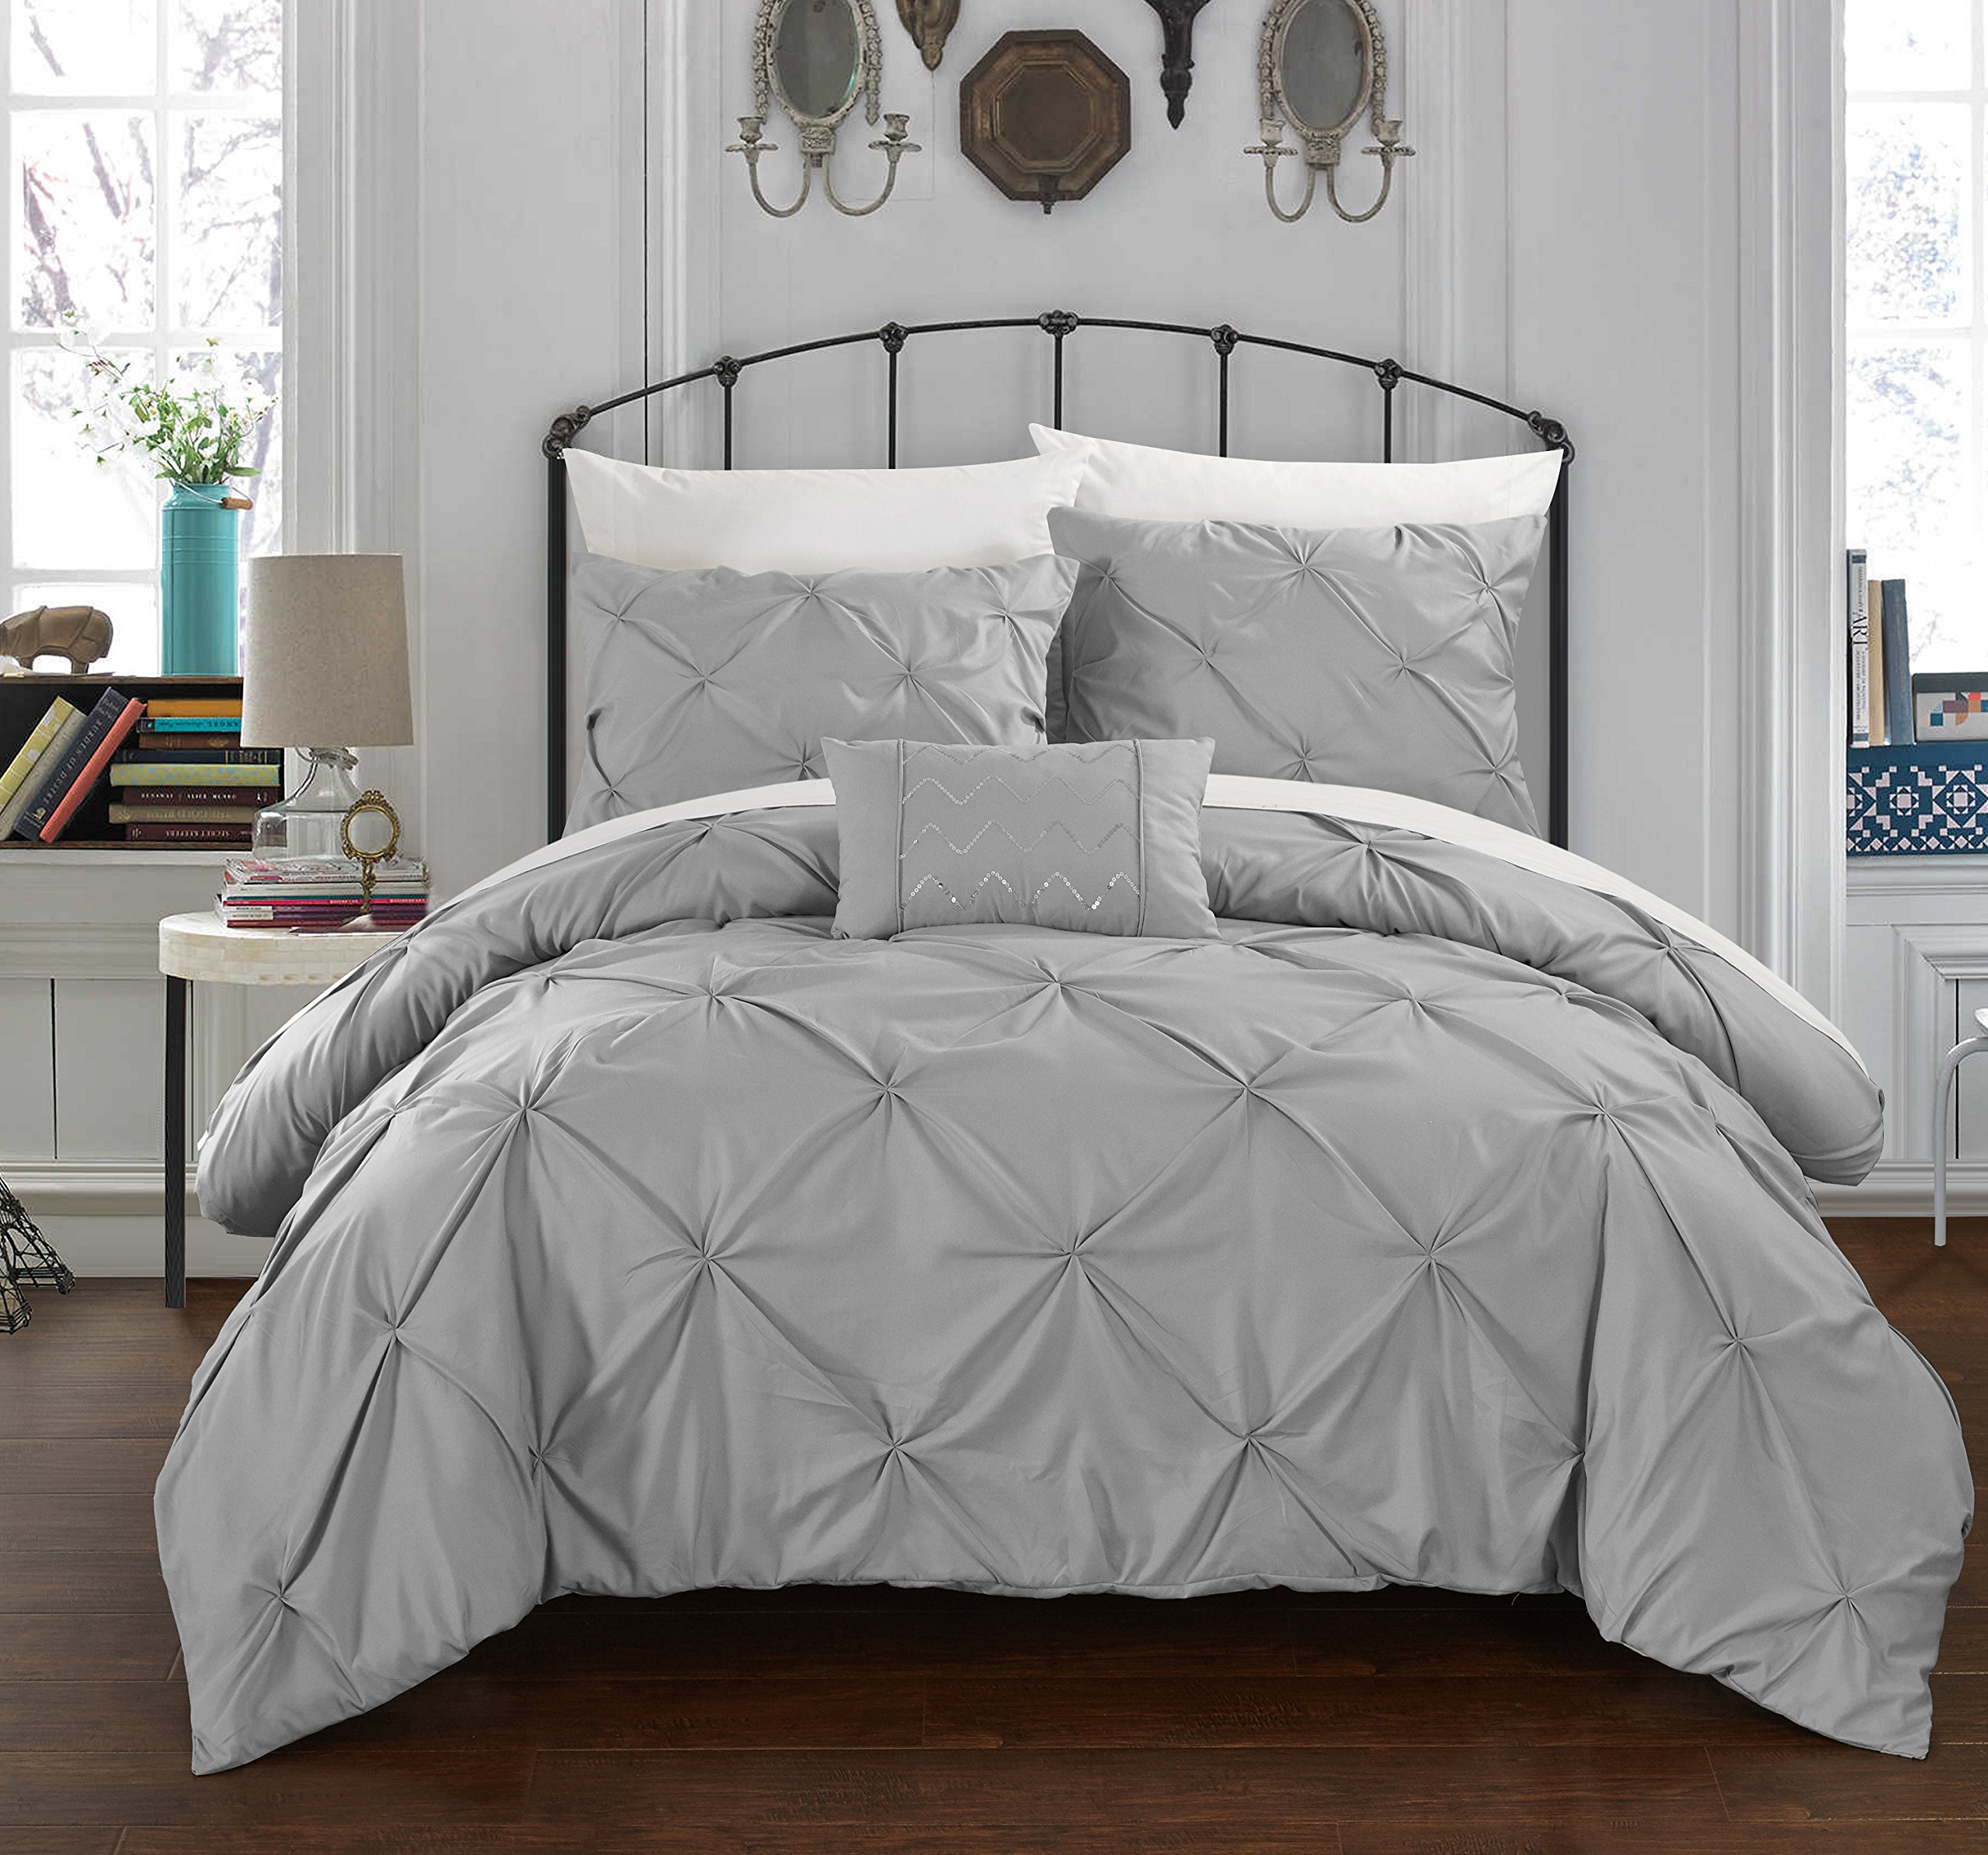 Chic Home 3 Piece Daya Pinch Pleated, Ruffled & Pleated Complete Duvet Cover Set Shams & Decorative Pillows Included, Twin, Silver